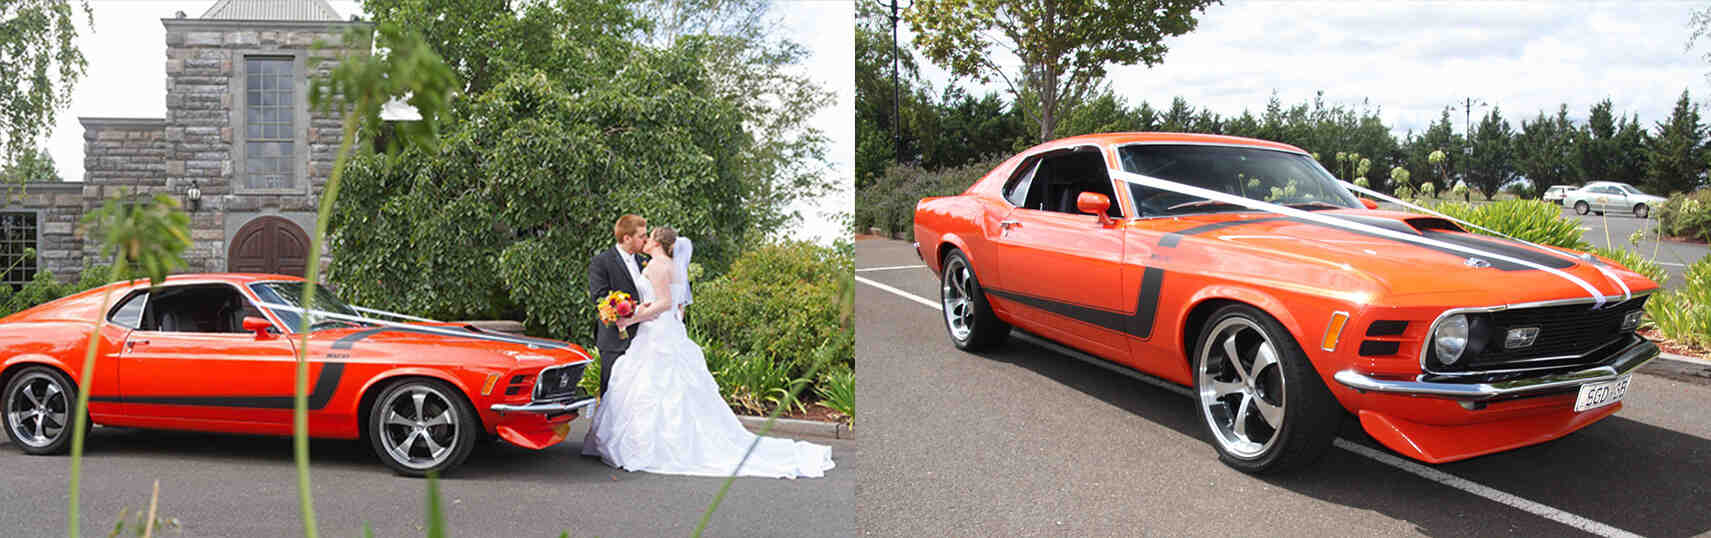 Wedding Cars Prices